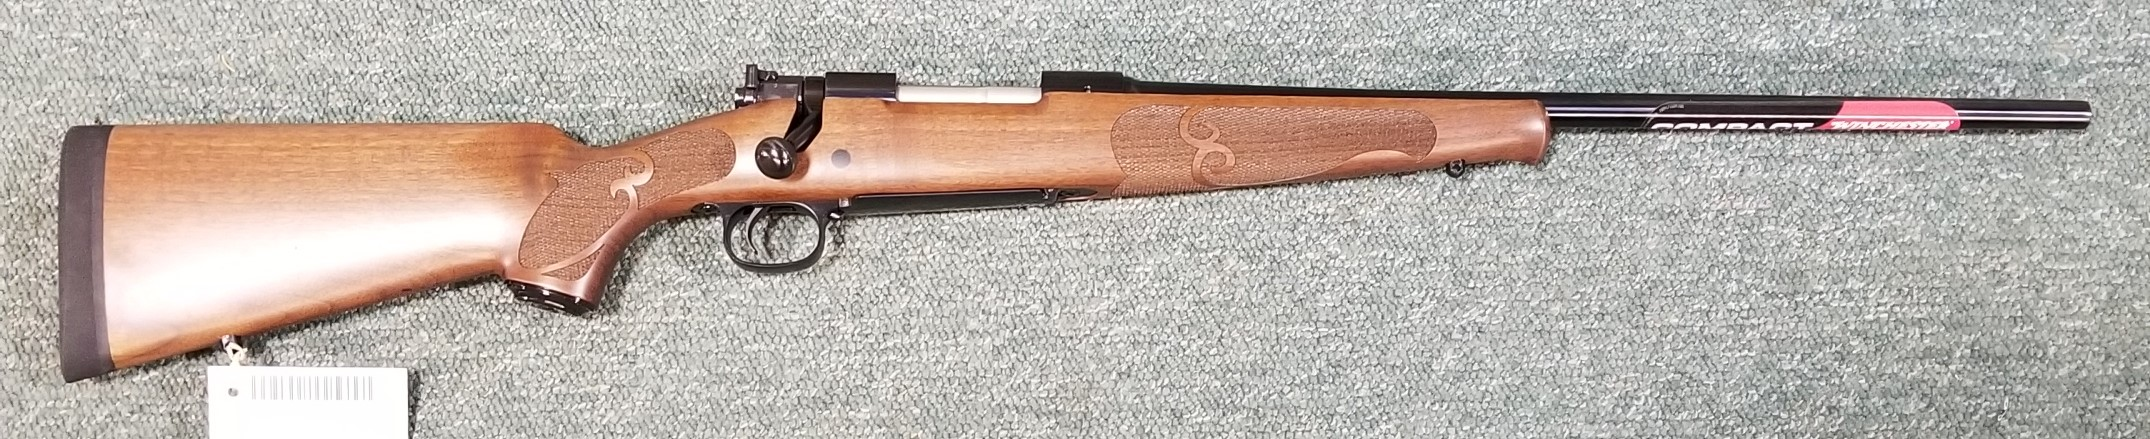 Winchester Model 70 Super Grade .280 Win. - Click Image to Close